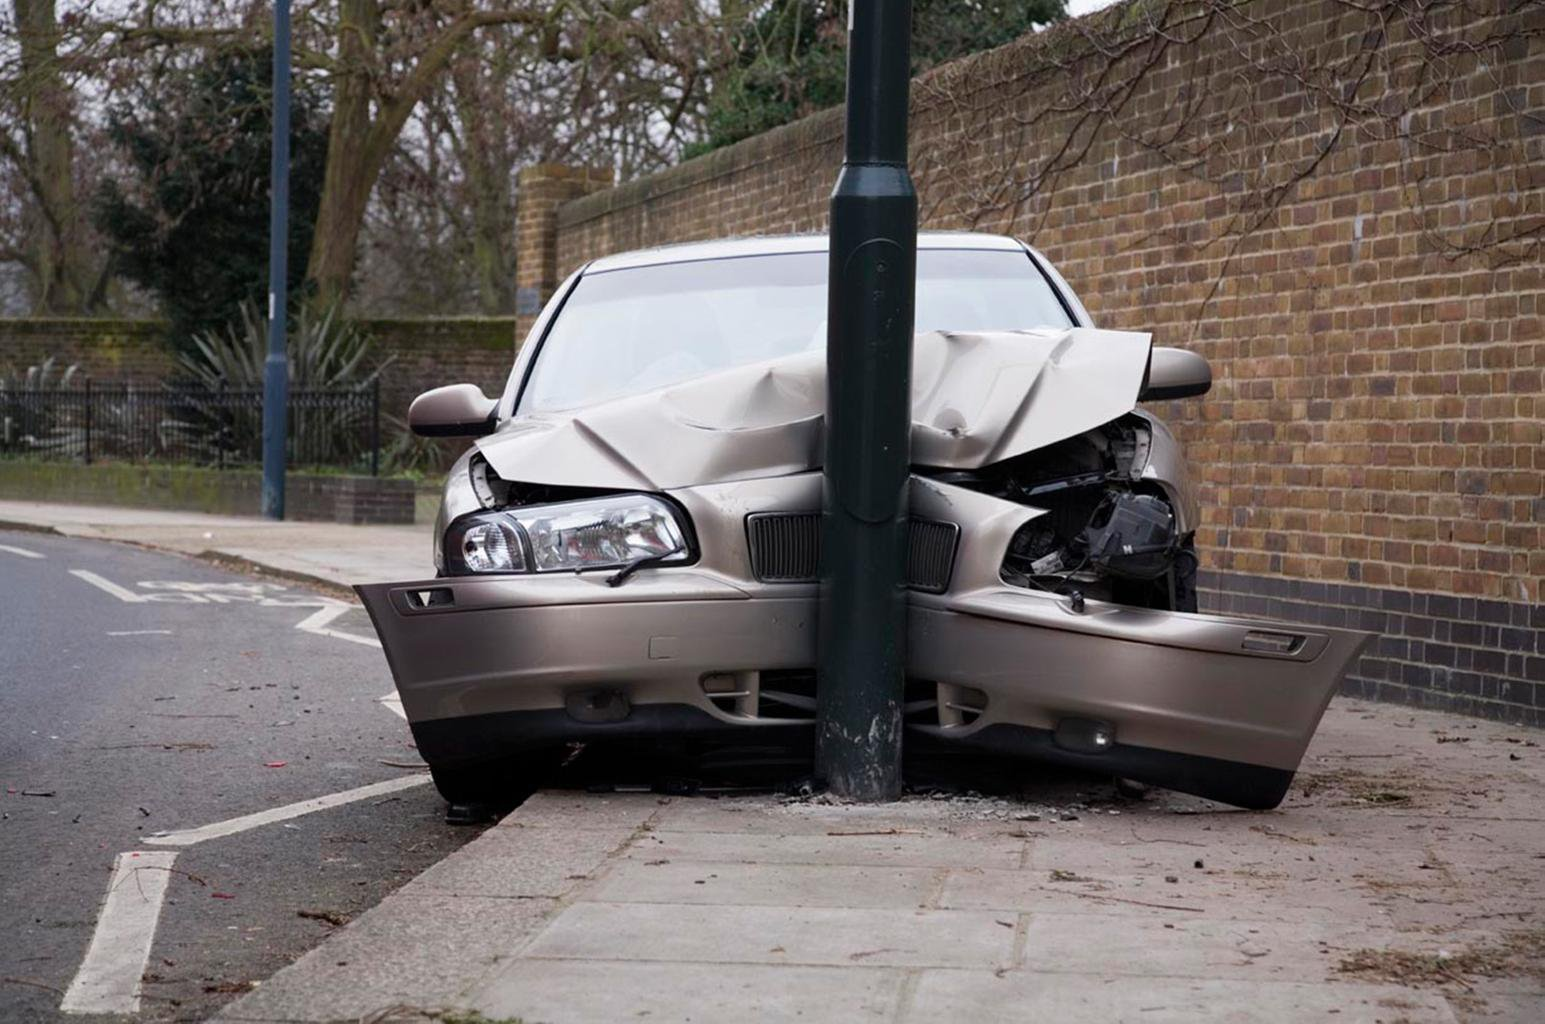 Crash-damaged cars: everything you need to know